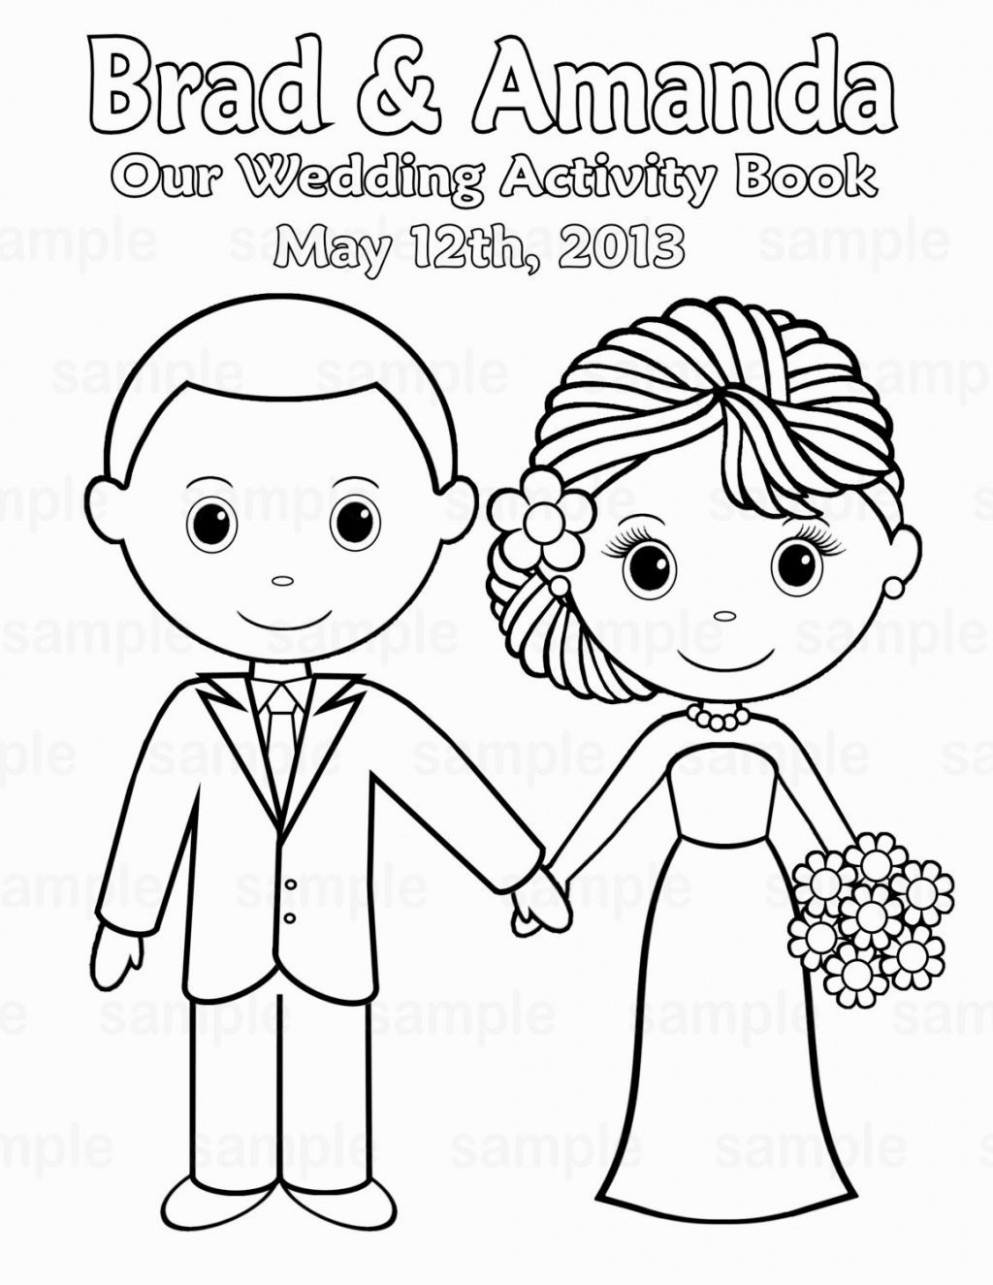 Wedding Coloring Book Printable   Coloring Pages   Pinterest ...